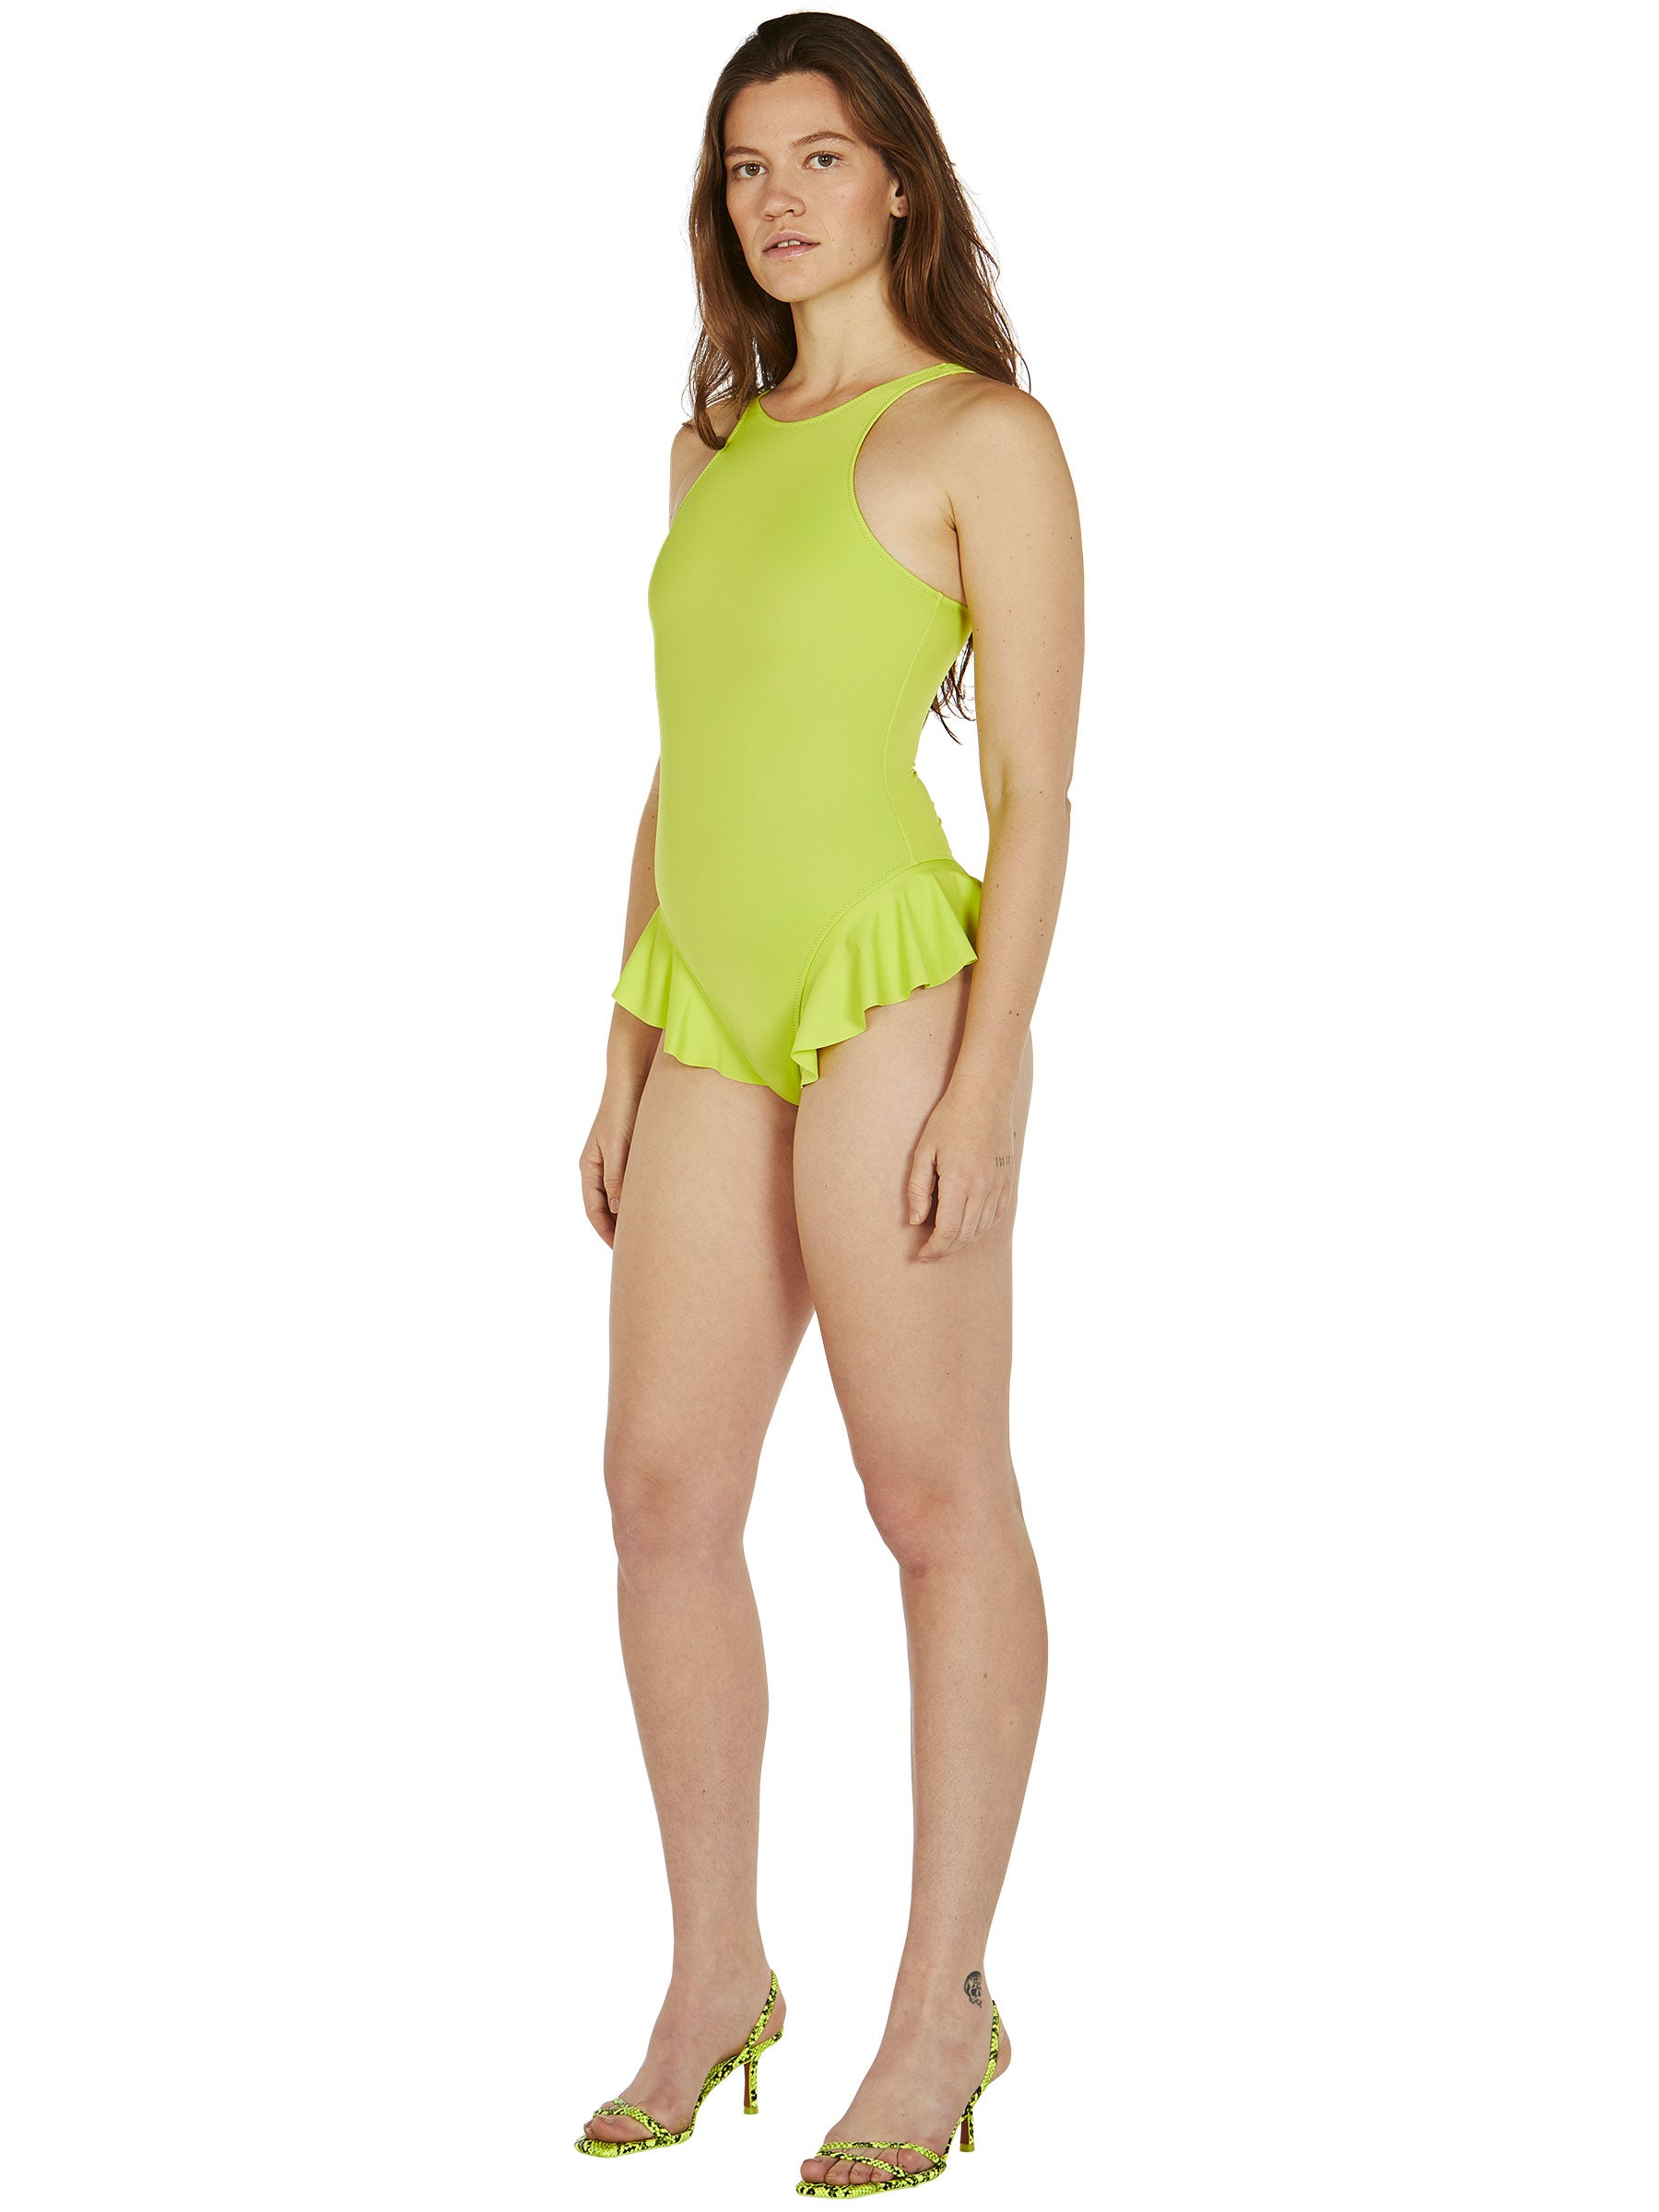 odd92 Fantabody Acid Green Erika Swimsuit Spring/Summer 2019 Womenswear - 2